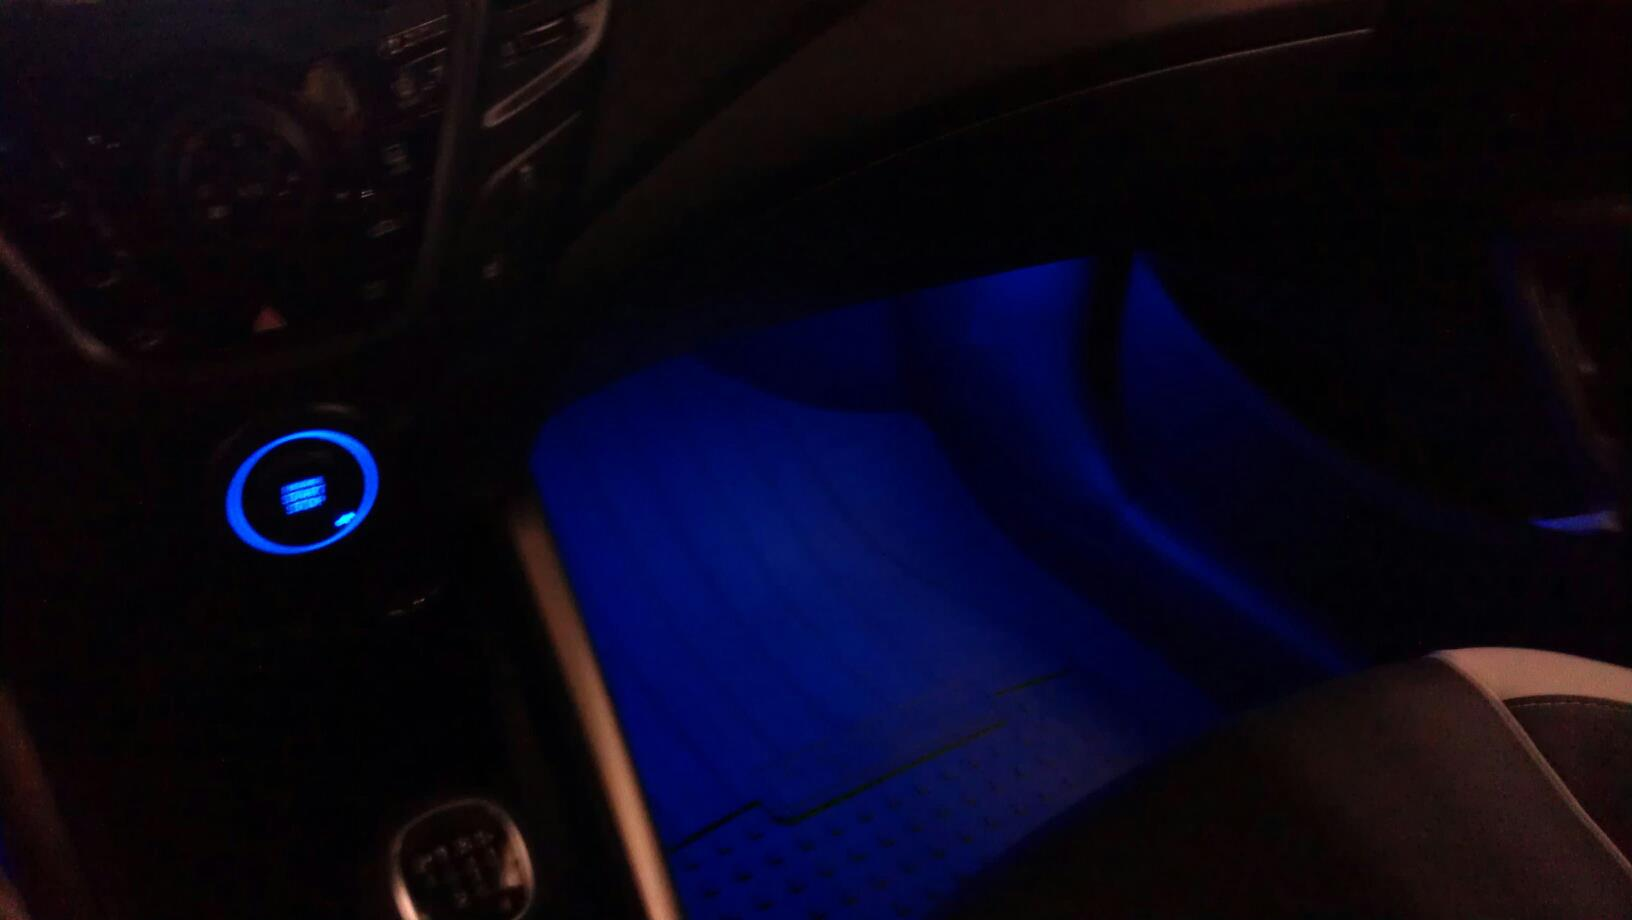 Footwell LEDs...check!-664856_10151155424403026_1060759494_o.jpg